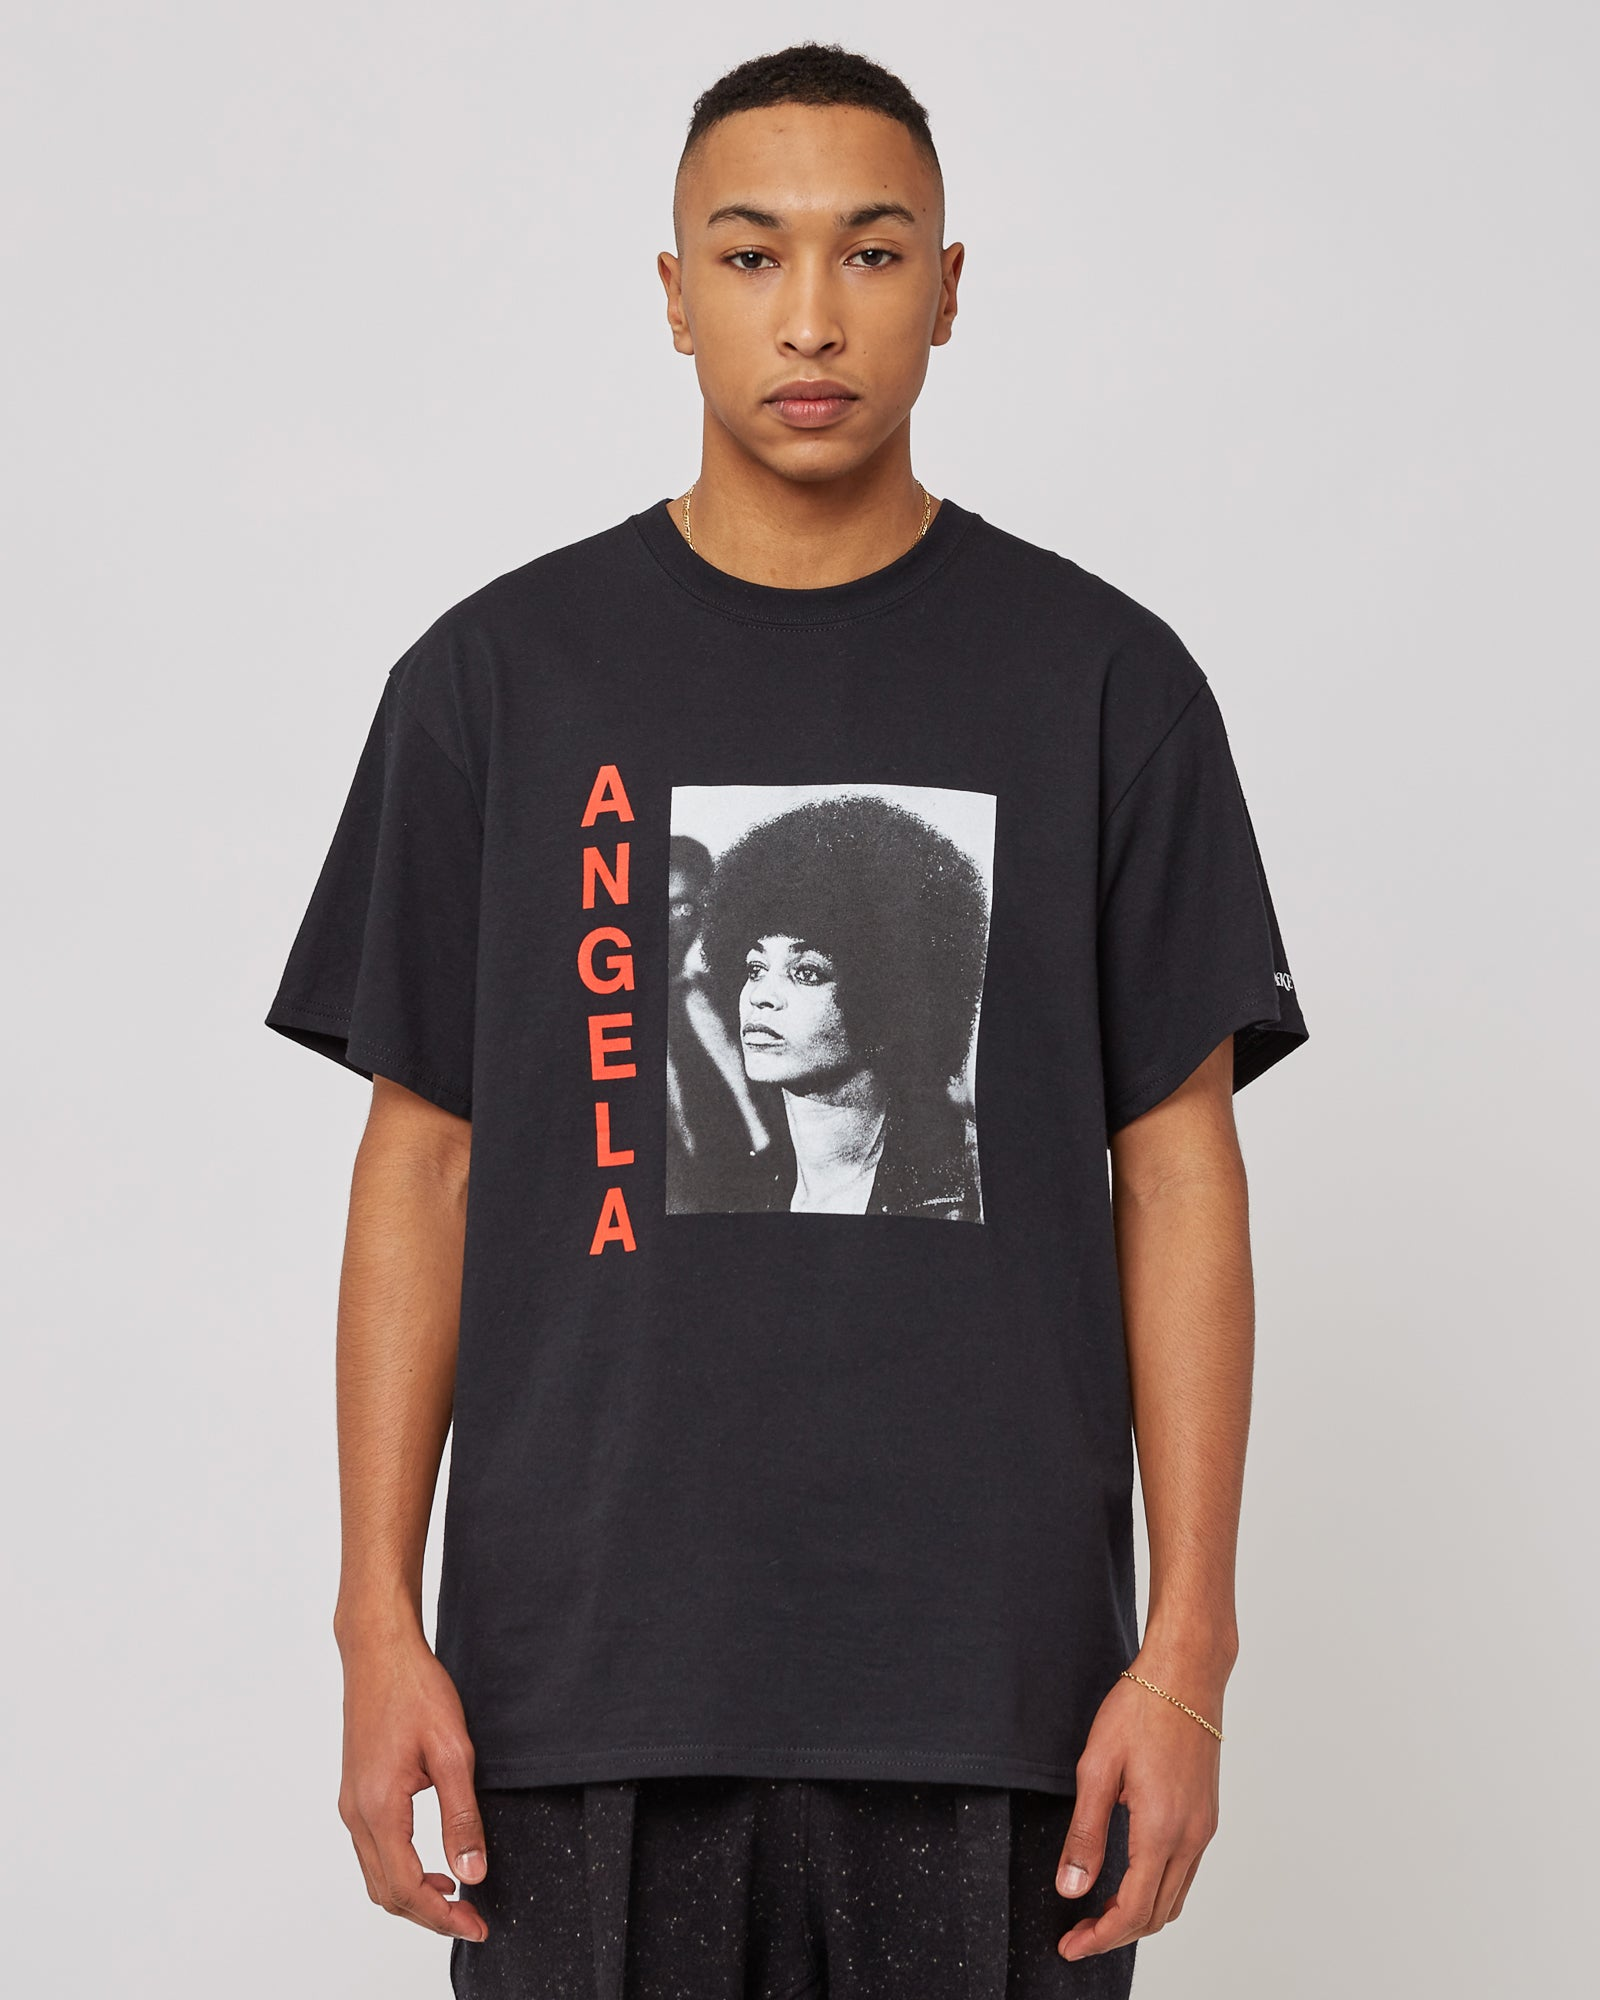 Angela Davis T-Shirt in Black